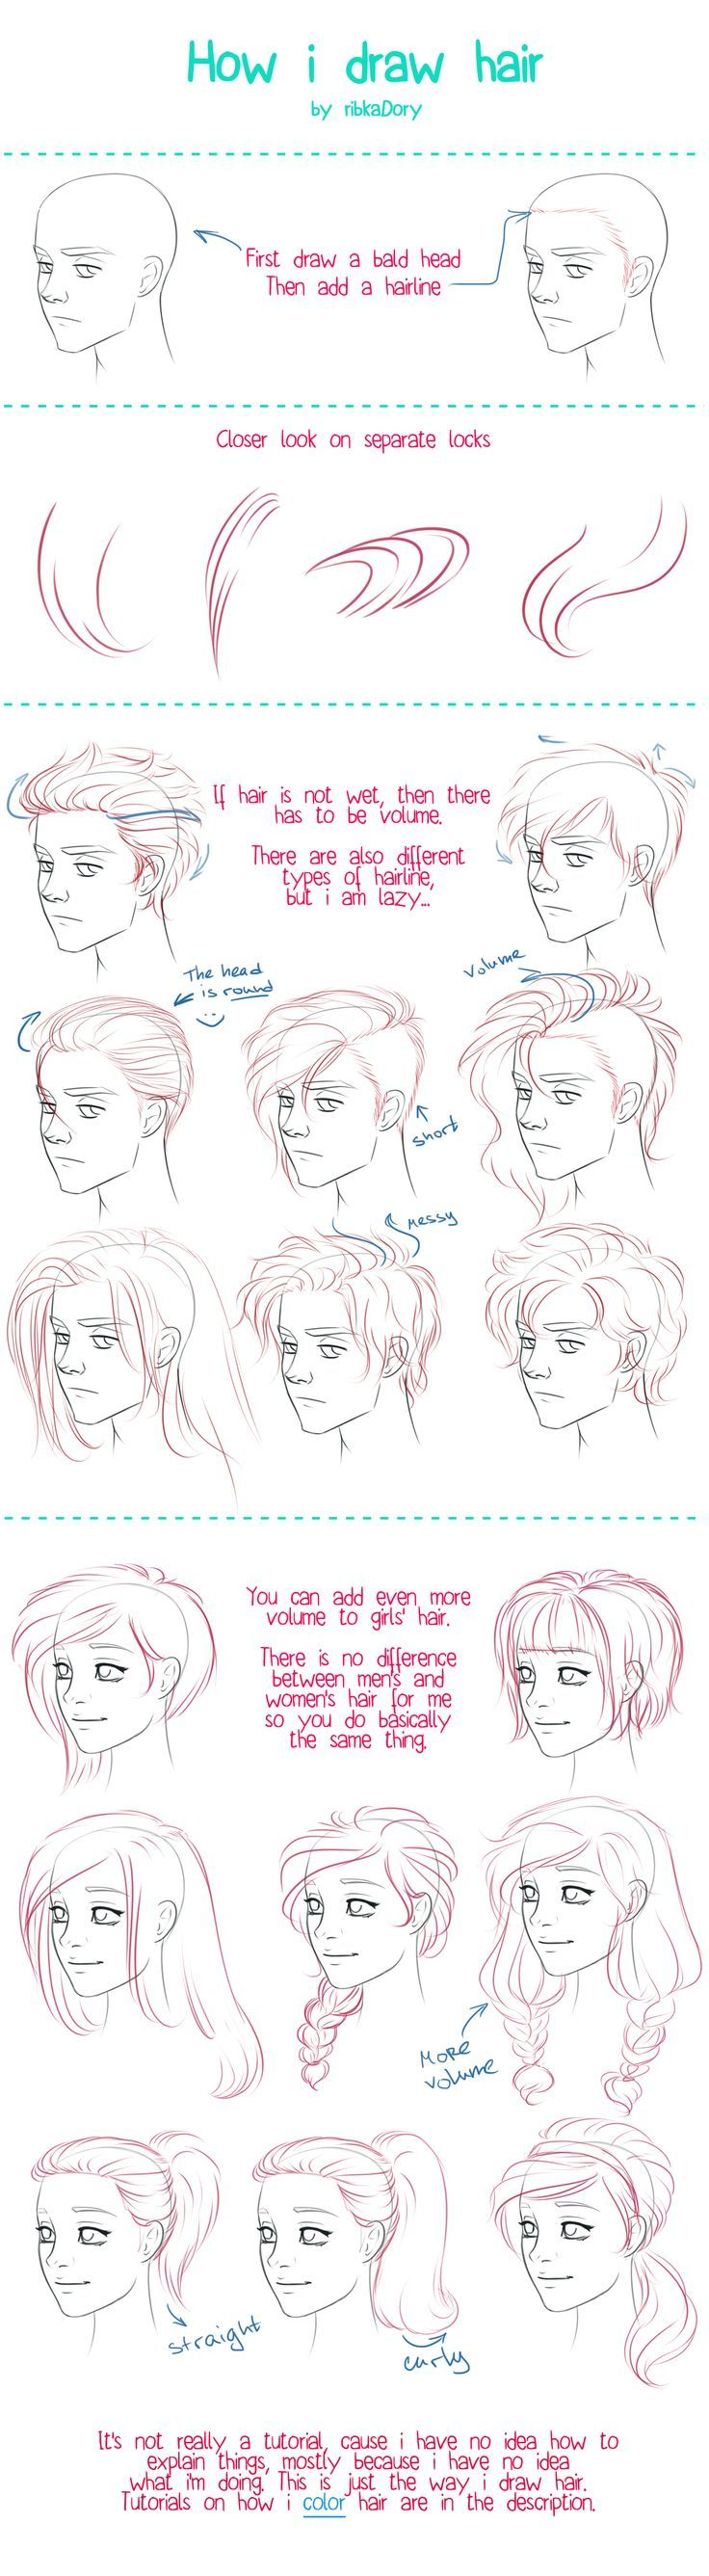 How to Draw Hair tutorial by =ribkaDory on deviantART: by drawing the ends and hairs at hairline close together you can create shading and a sense of form.: